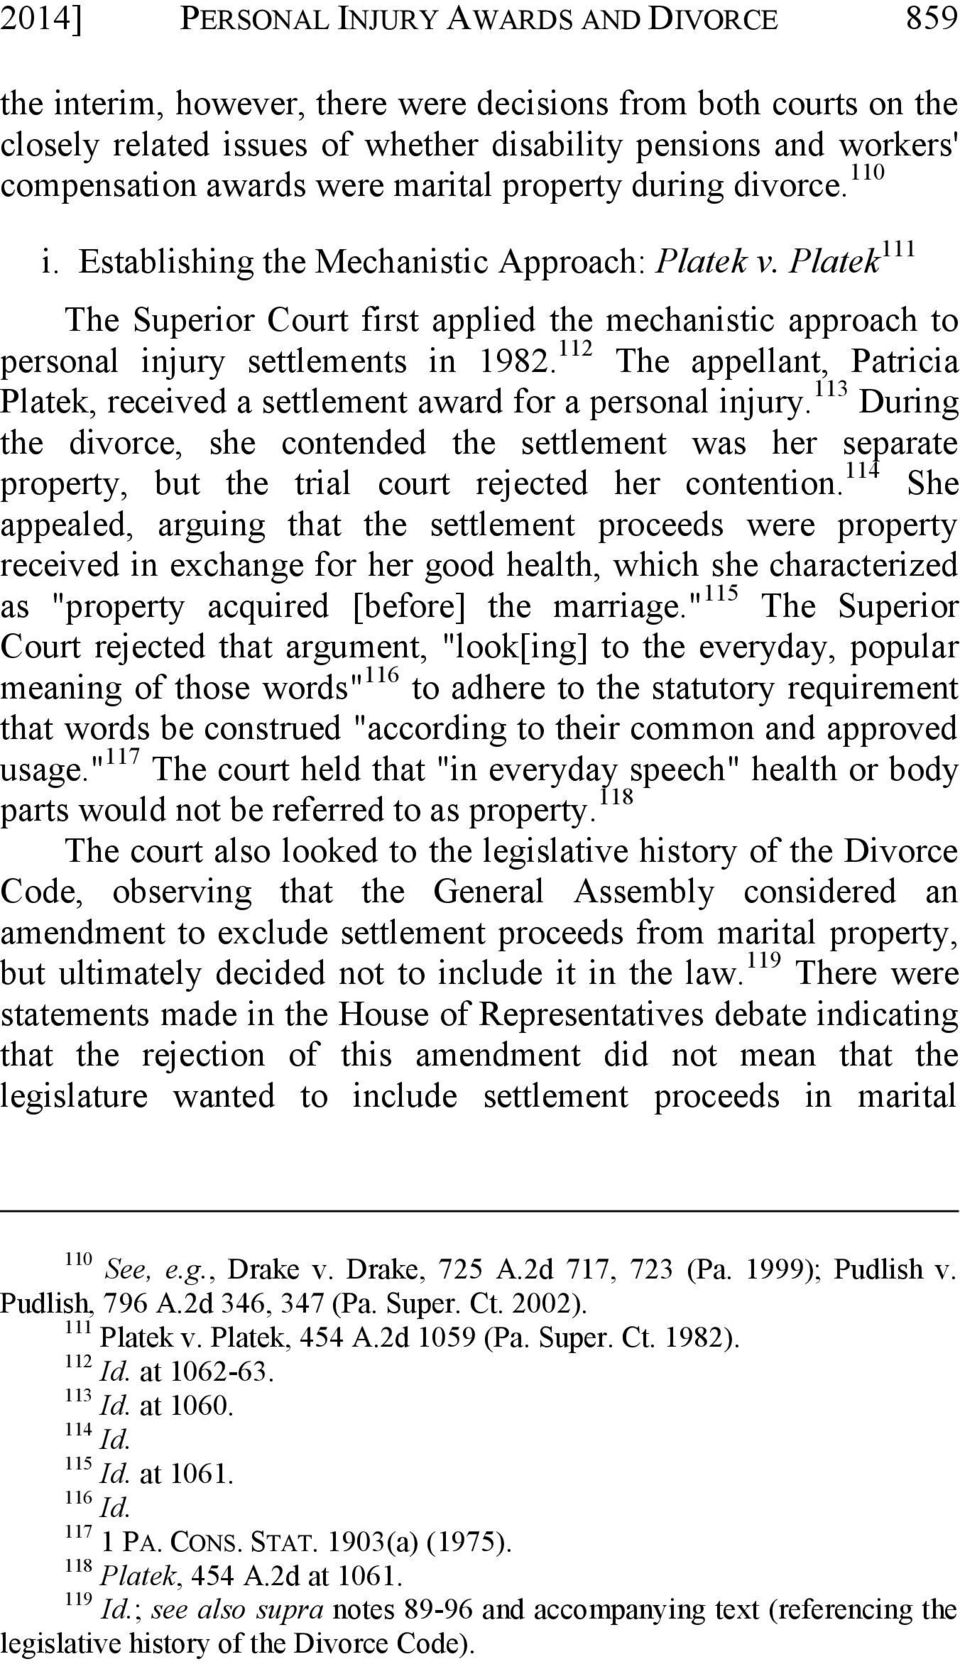 Platek 111 The Superior Court first applied the mechanistic approach to personal injury settlements in 1982. 112 The appellant, Patricia Platek, received a settlement award for a personal injury.